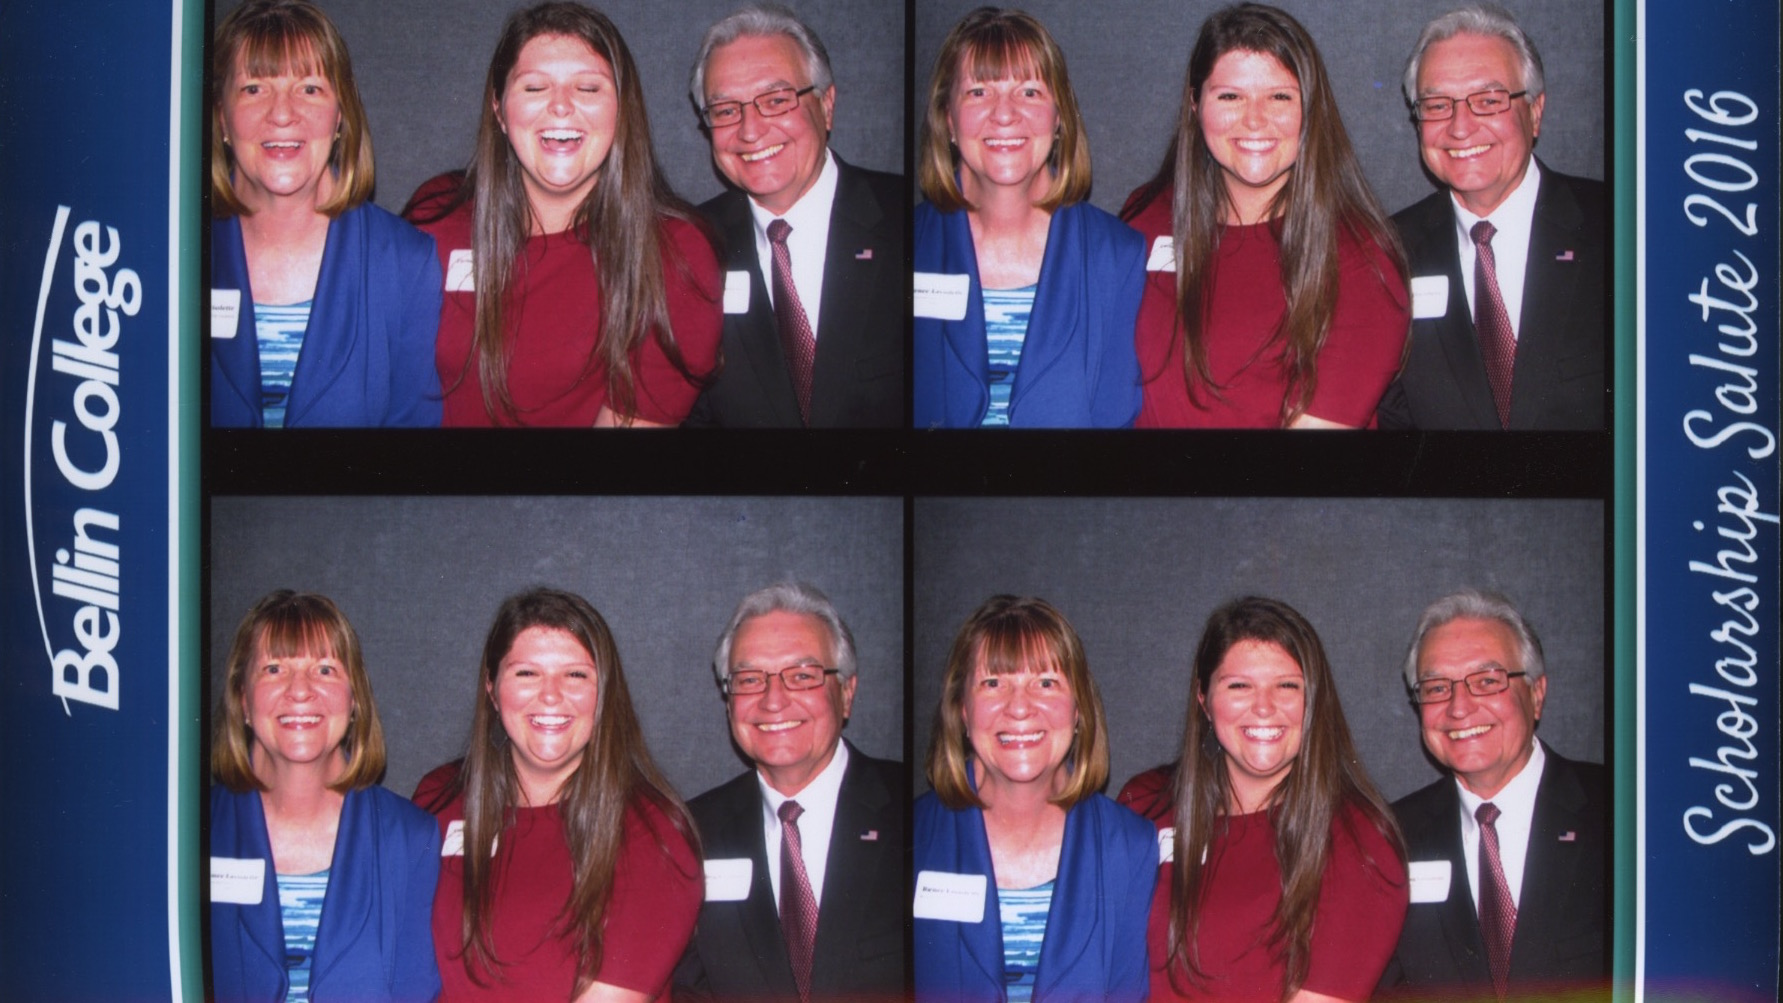 Emma with Doug and Renee LaViolette in the photo booth at the scholarship award reception